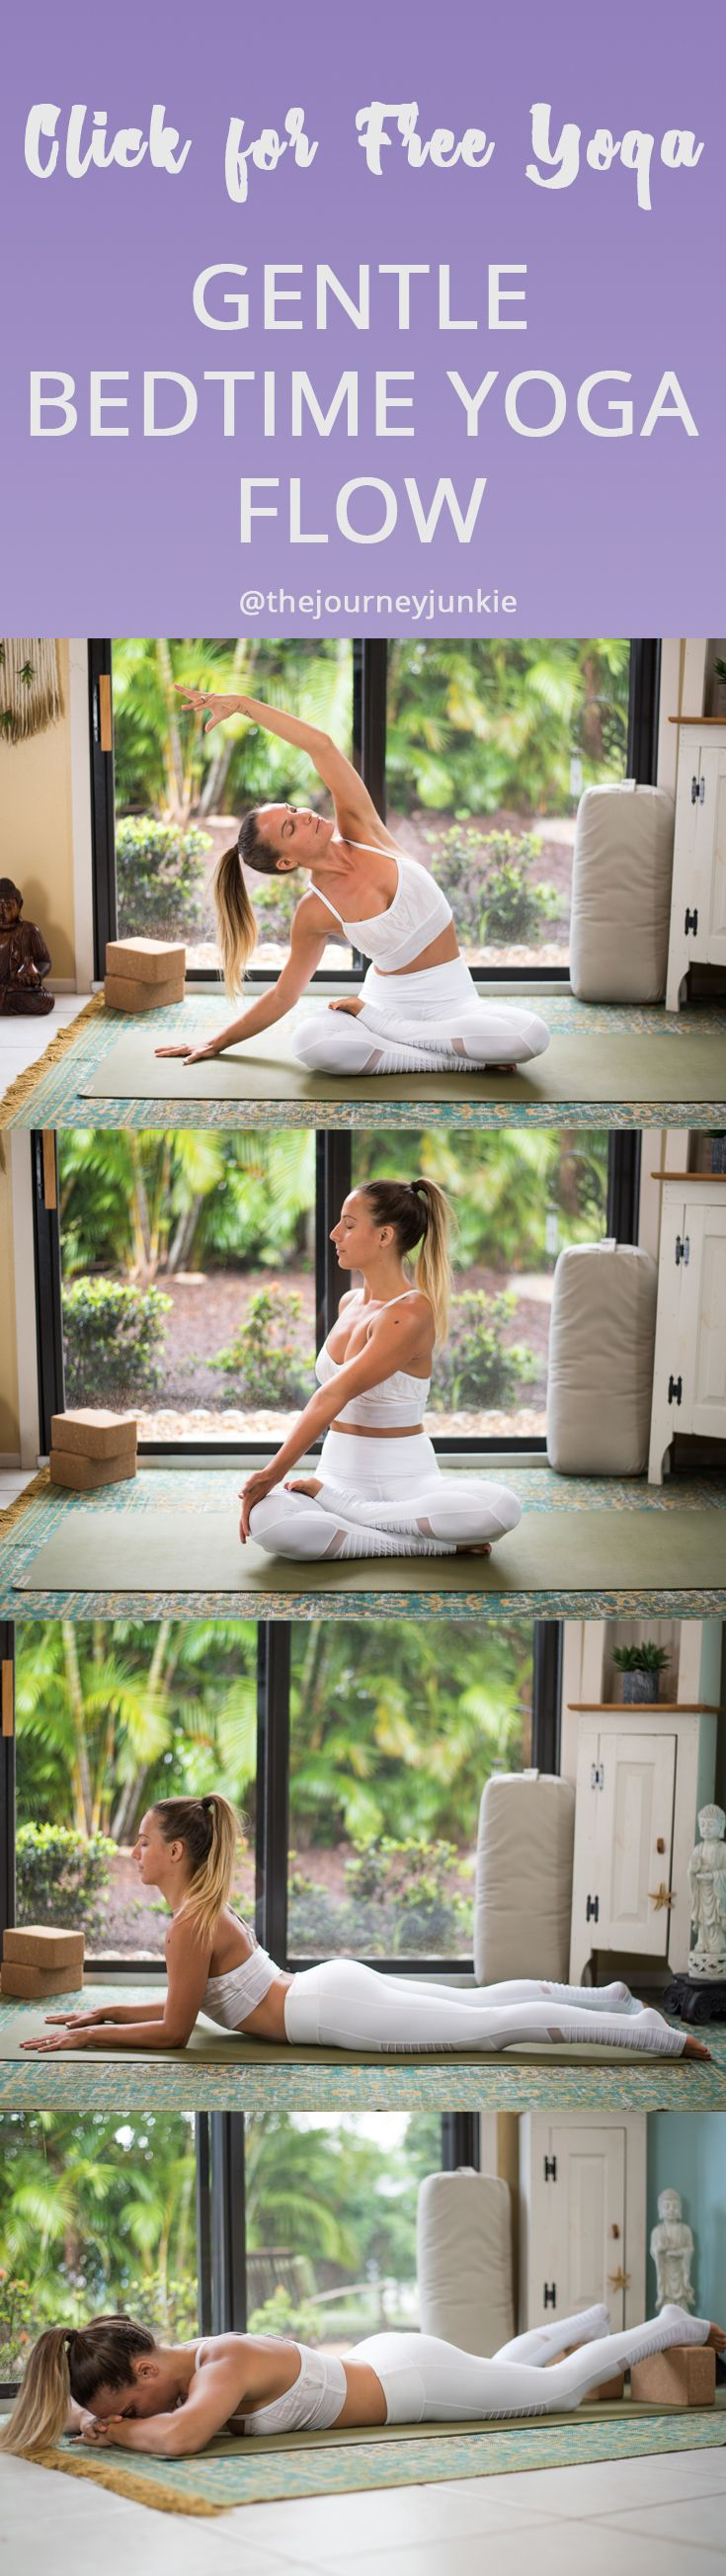 Bedtime Yoga Video: Gentle Slow Practice to Relax and Rest - Pin now, relax now, rest now, get to bed now!